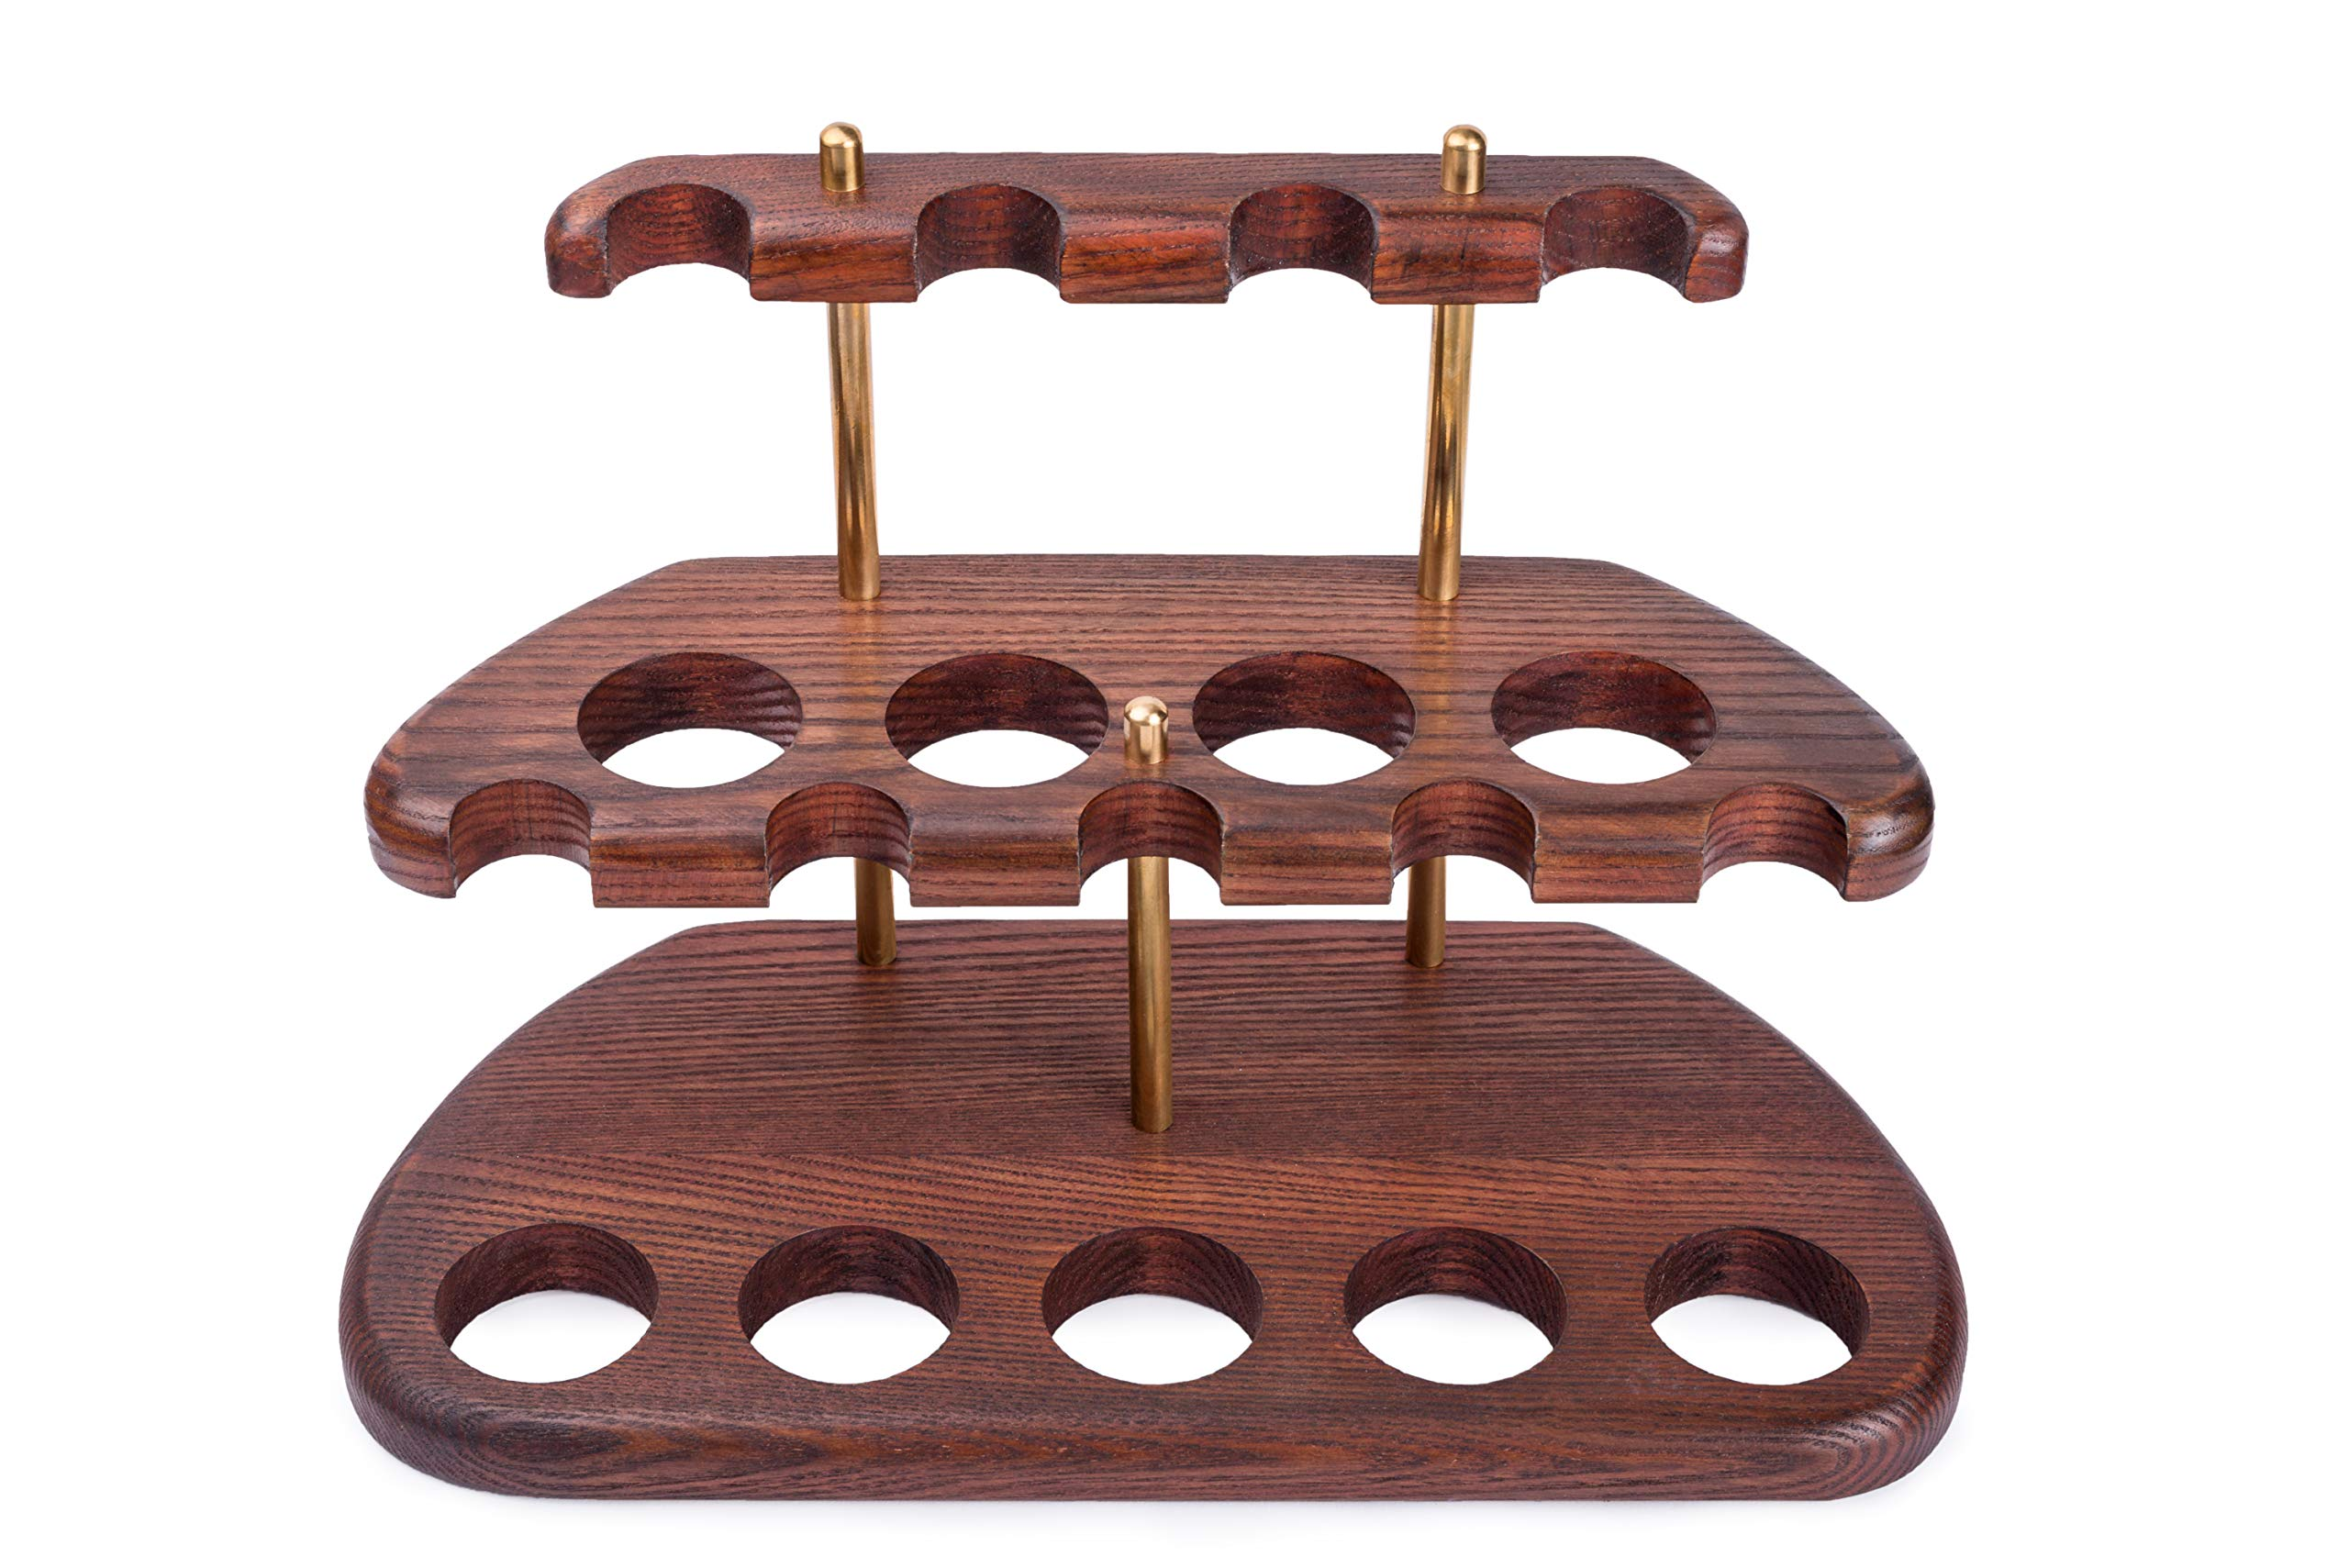 Dr.Watson - 9 Smoking Pipe / Pipes Stand Rack Hold Case Display - Arch IX - Solid wood, Brass by Dr.Watson